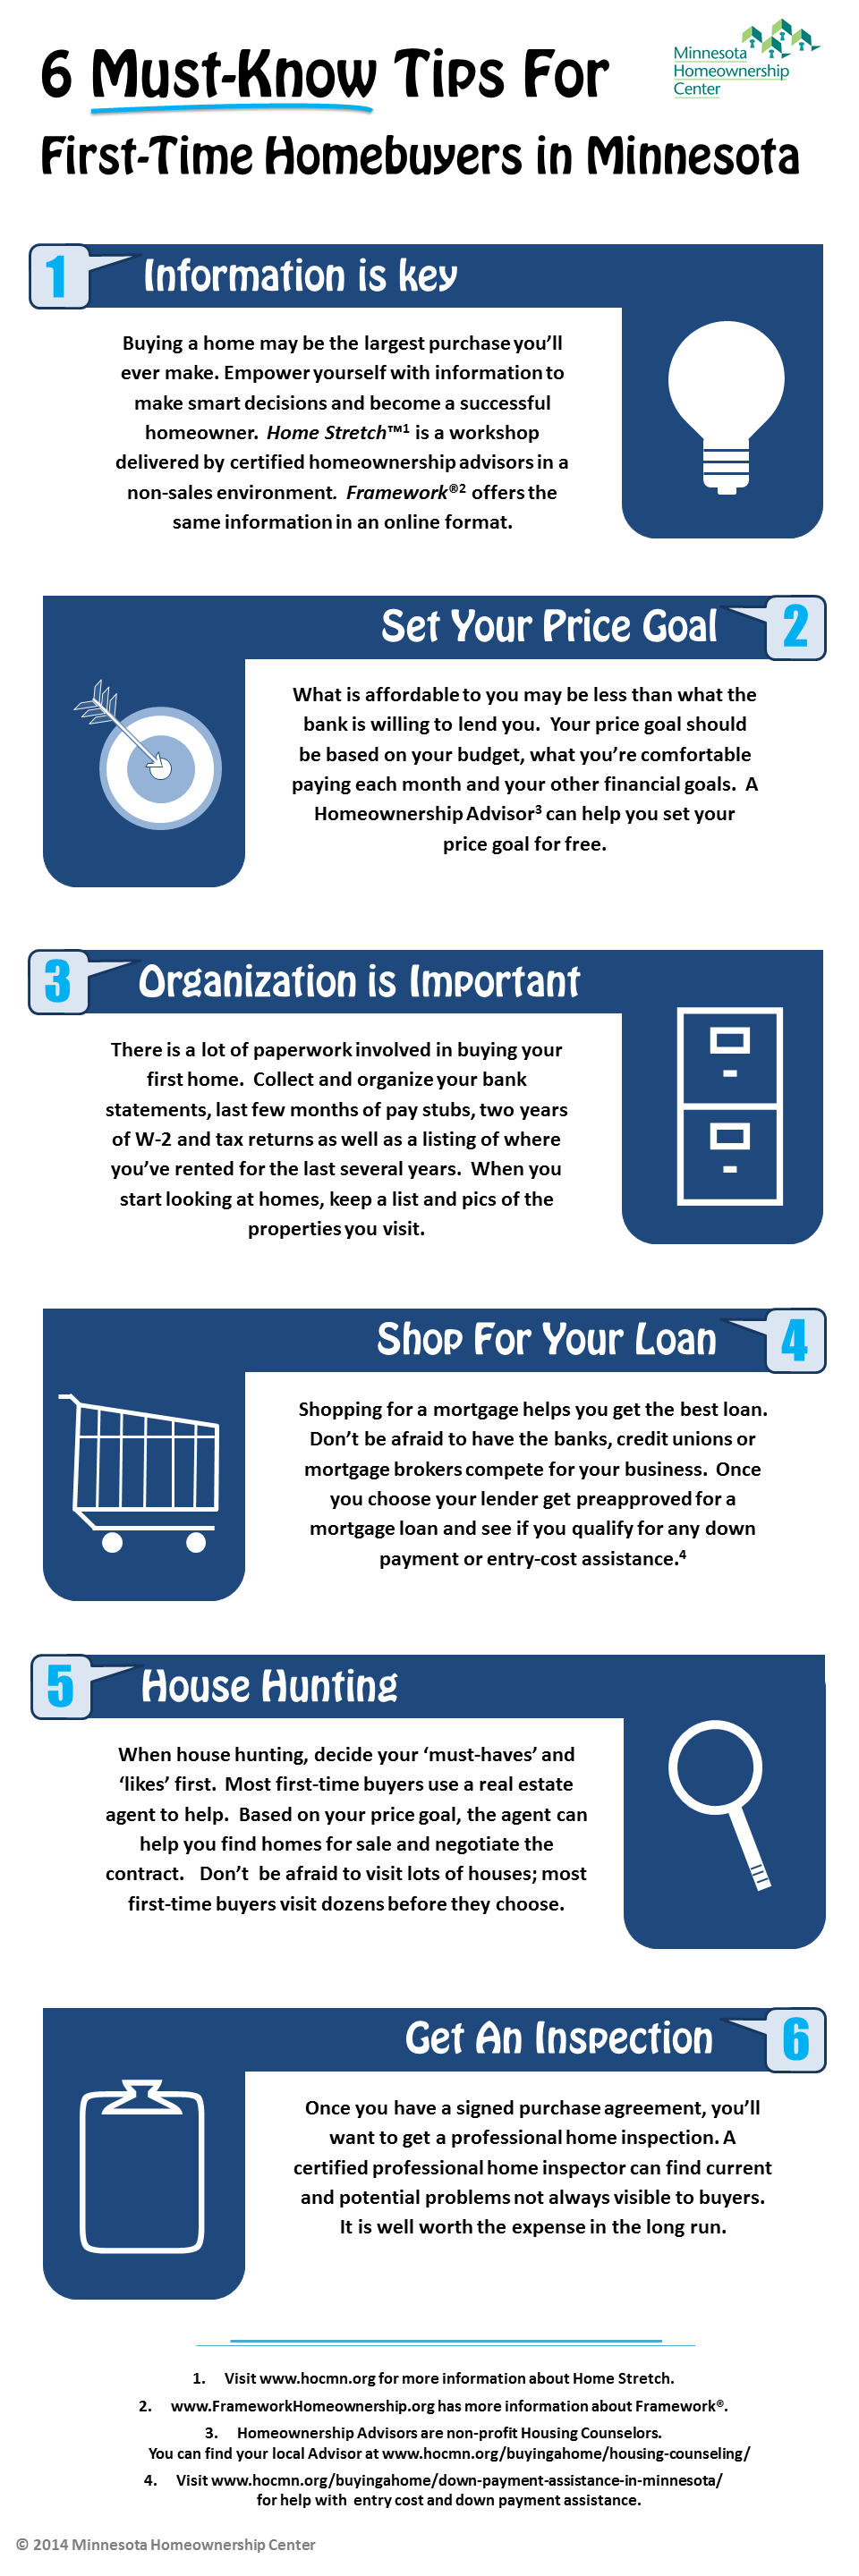 6tips_FirstTimeHomebuyers